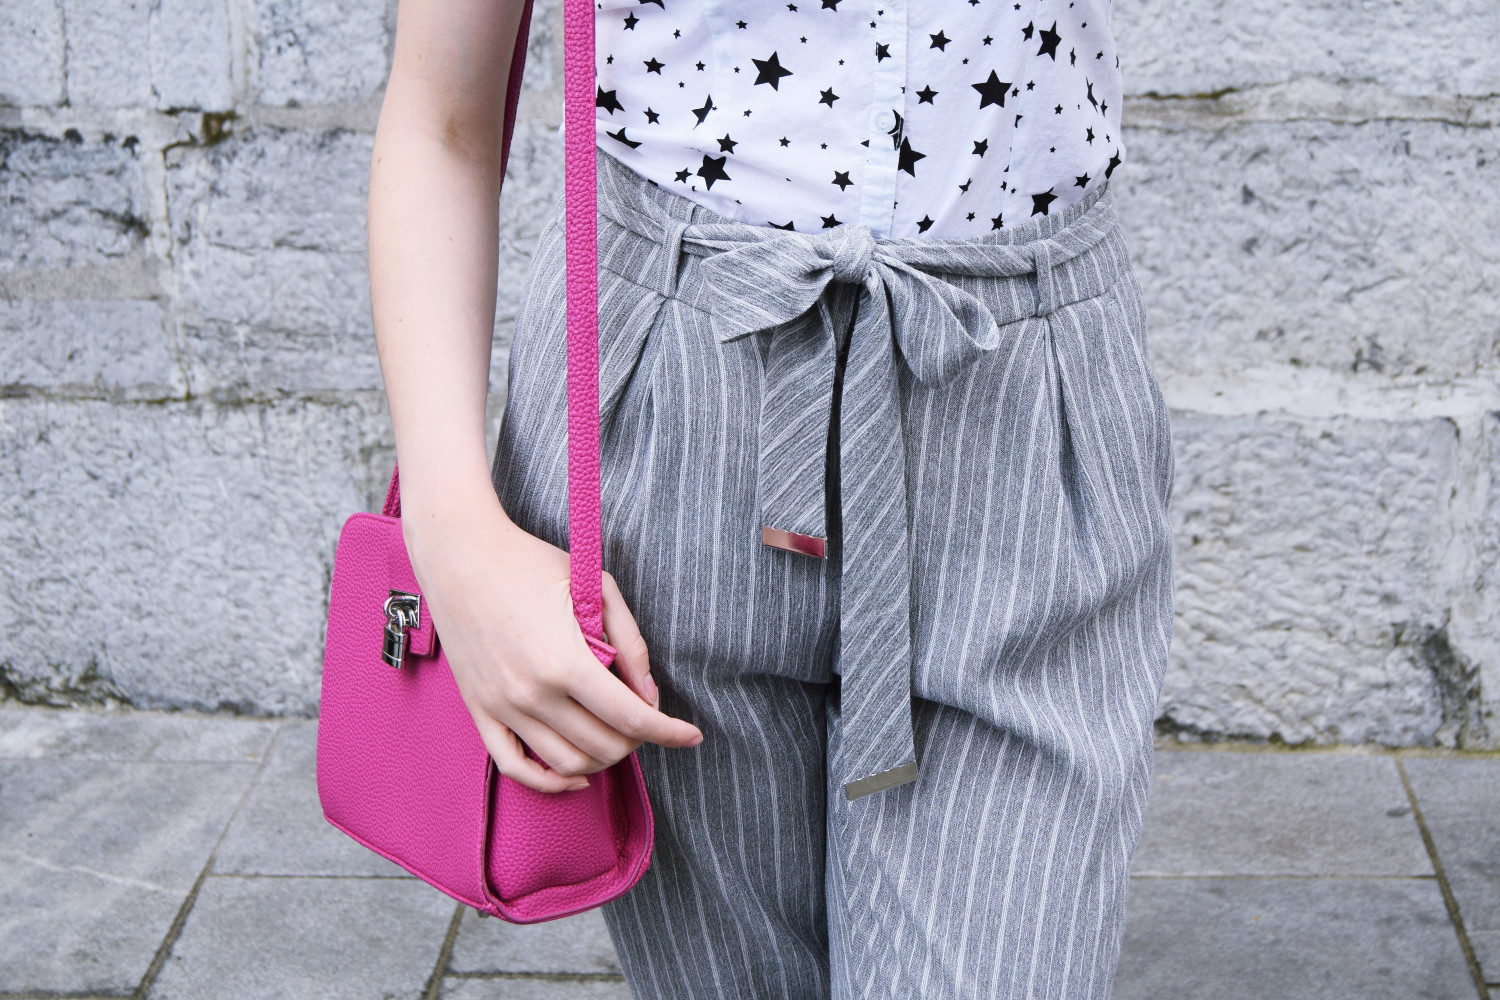 Touch_of_pink_Zalabell_fashion_style_5